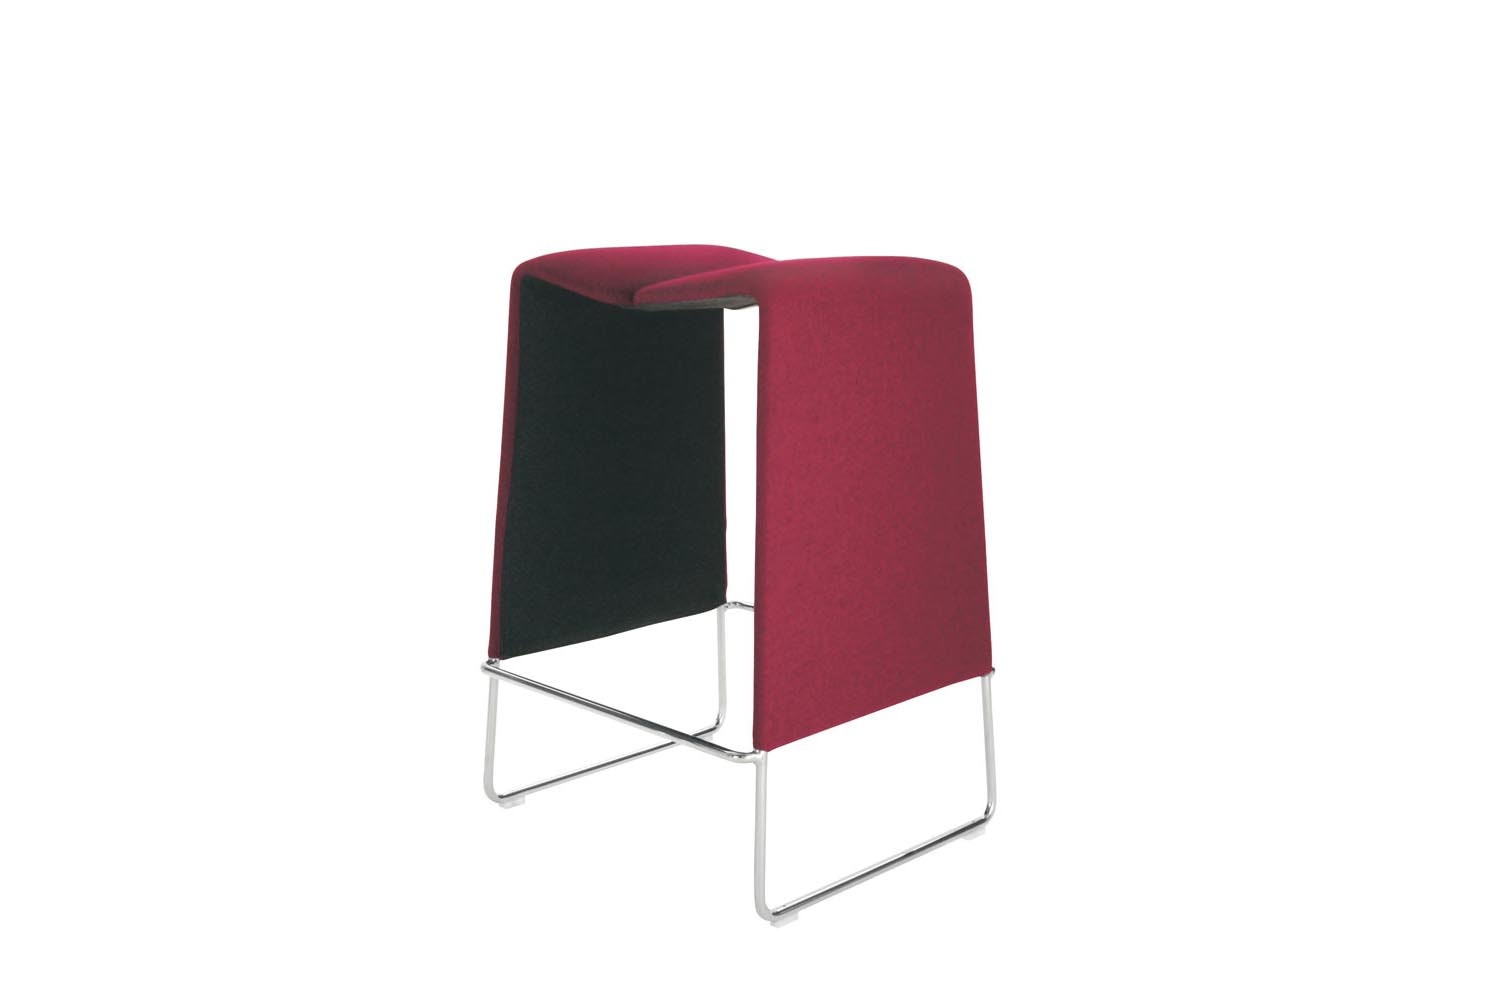 Lazy '05 Stool by Patricia Urquiola for B&B Italia